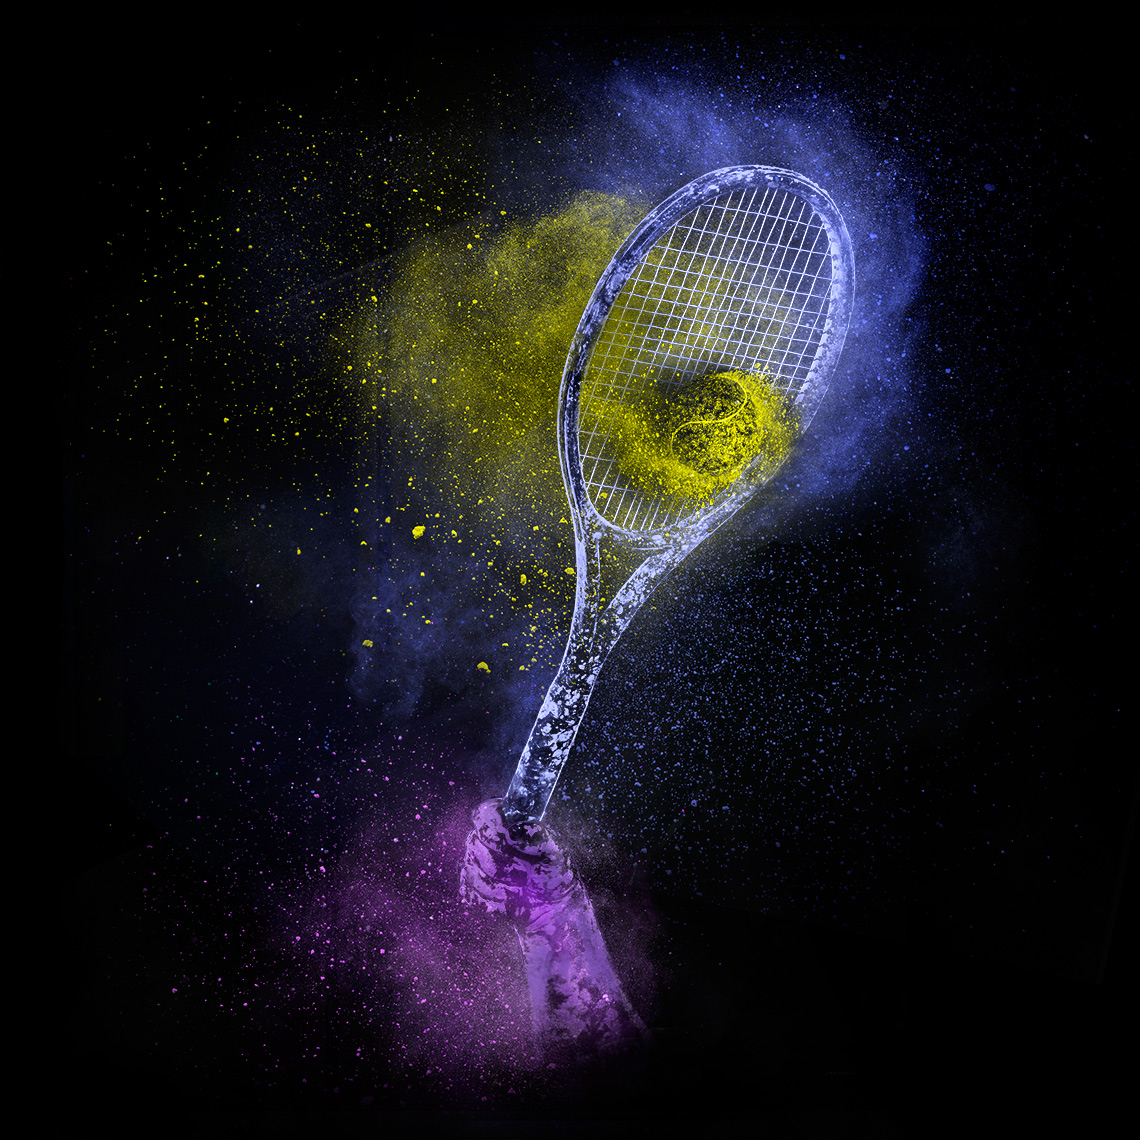 Philadelphia Photographer STEVE BOYLE - Powder Sports - Tennis